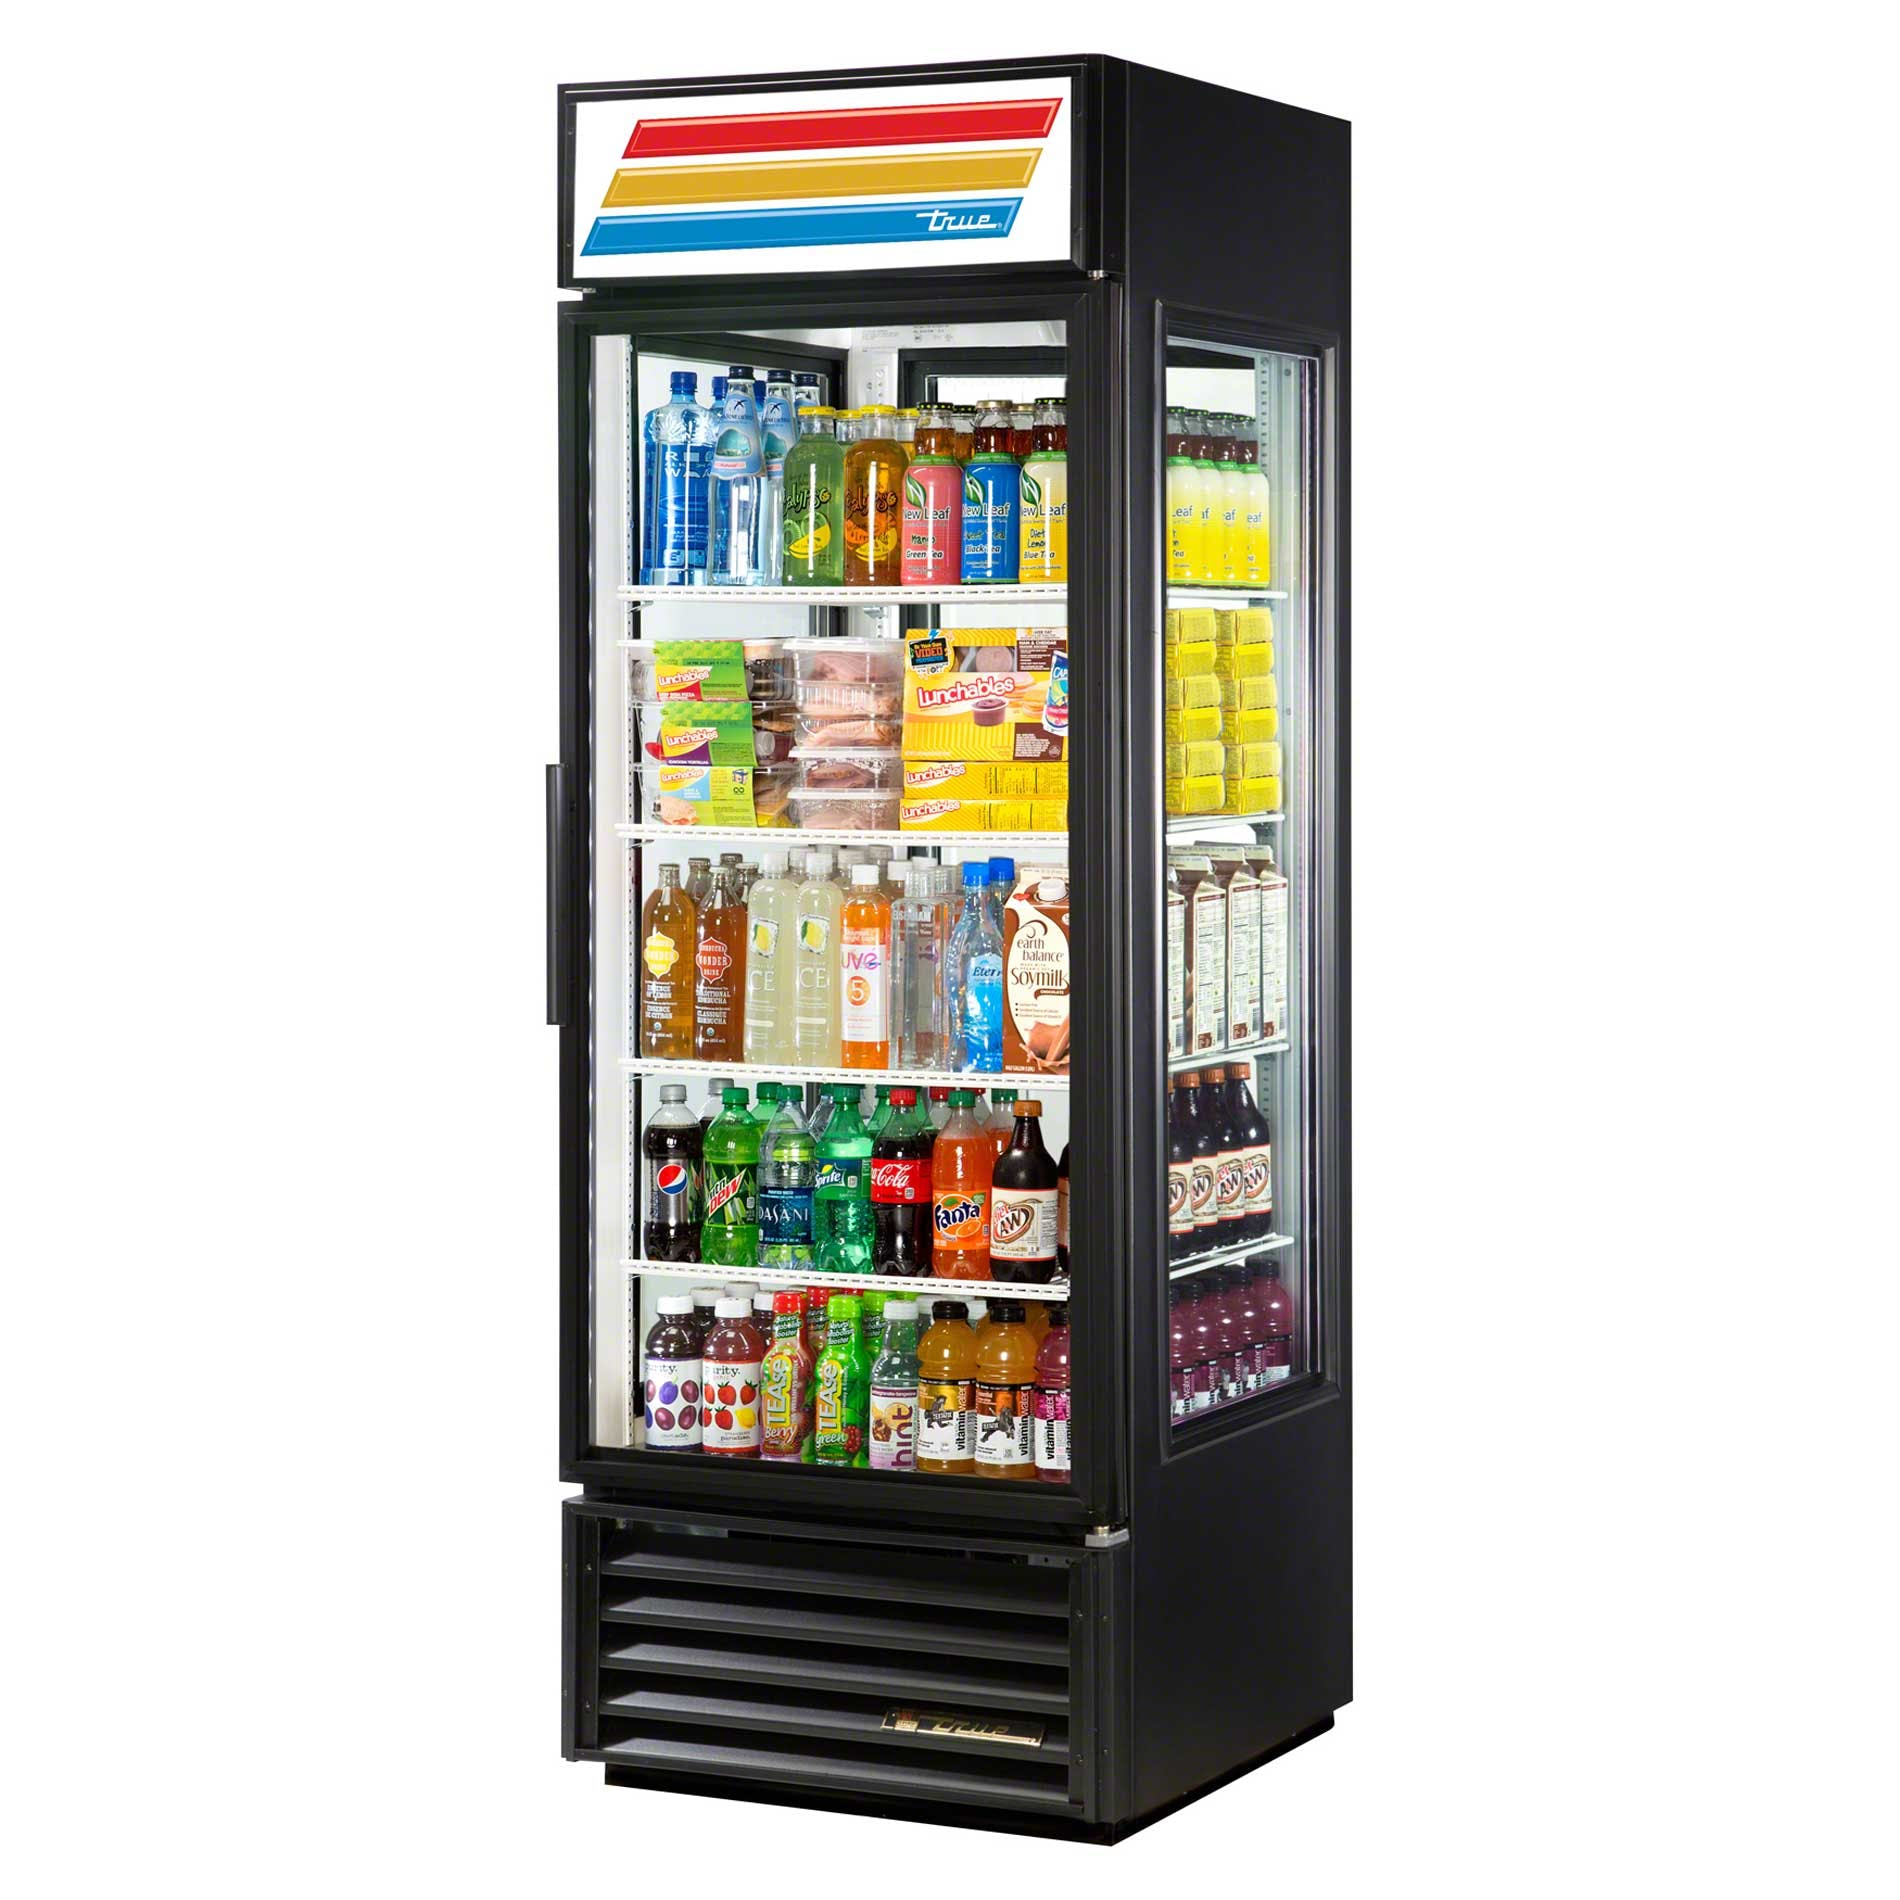 "True - G4SM-23-LD 28"" Glass Four Sided Merchandiser Refrigerator LED Commercial refrigerator sold by Food Service Warehouse"